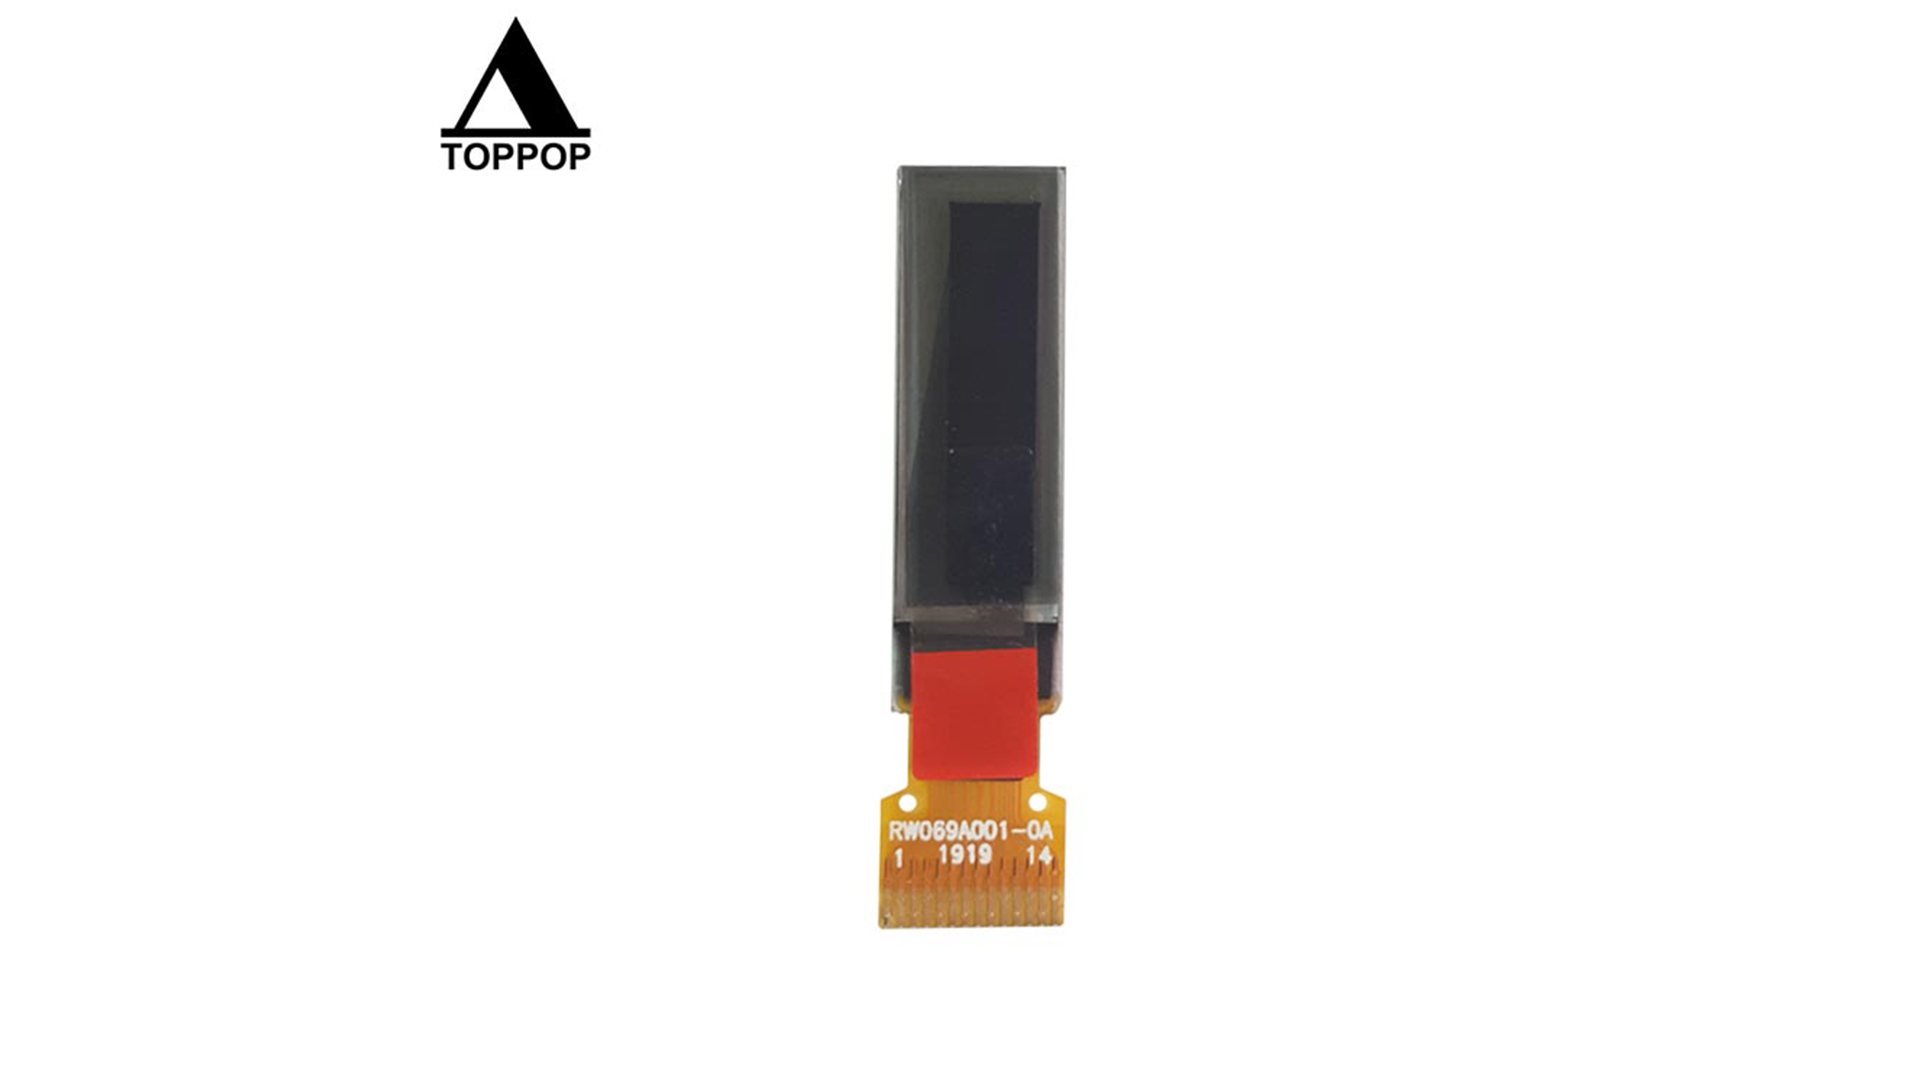 0.69 inch 96*16 pmoled lcd panle Monochrome cheap White mono OLED Display IPS SPI I2C MCU TFT LCD color Screen Module RA1315 14 for Medical oxygenometer Pin poppoplcd